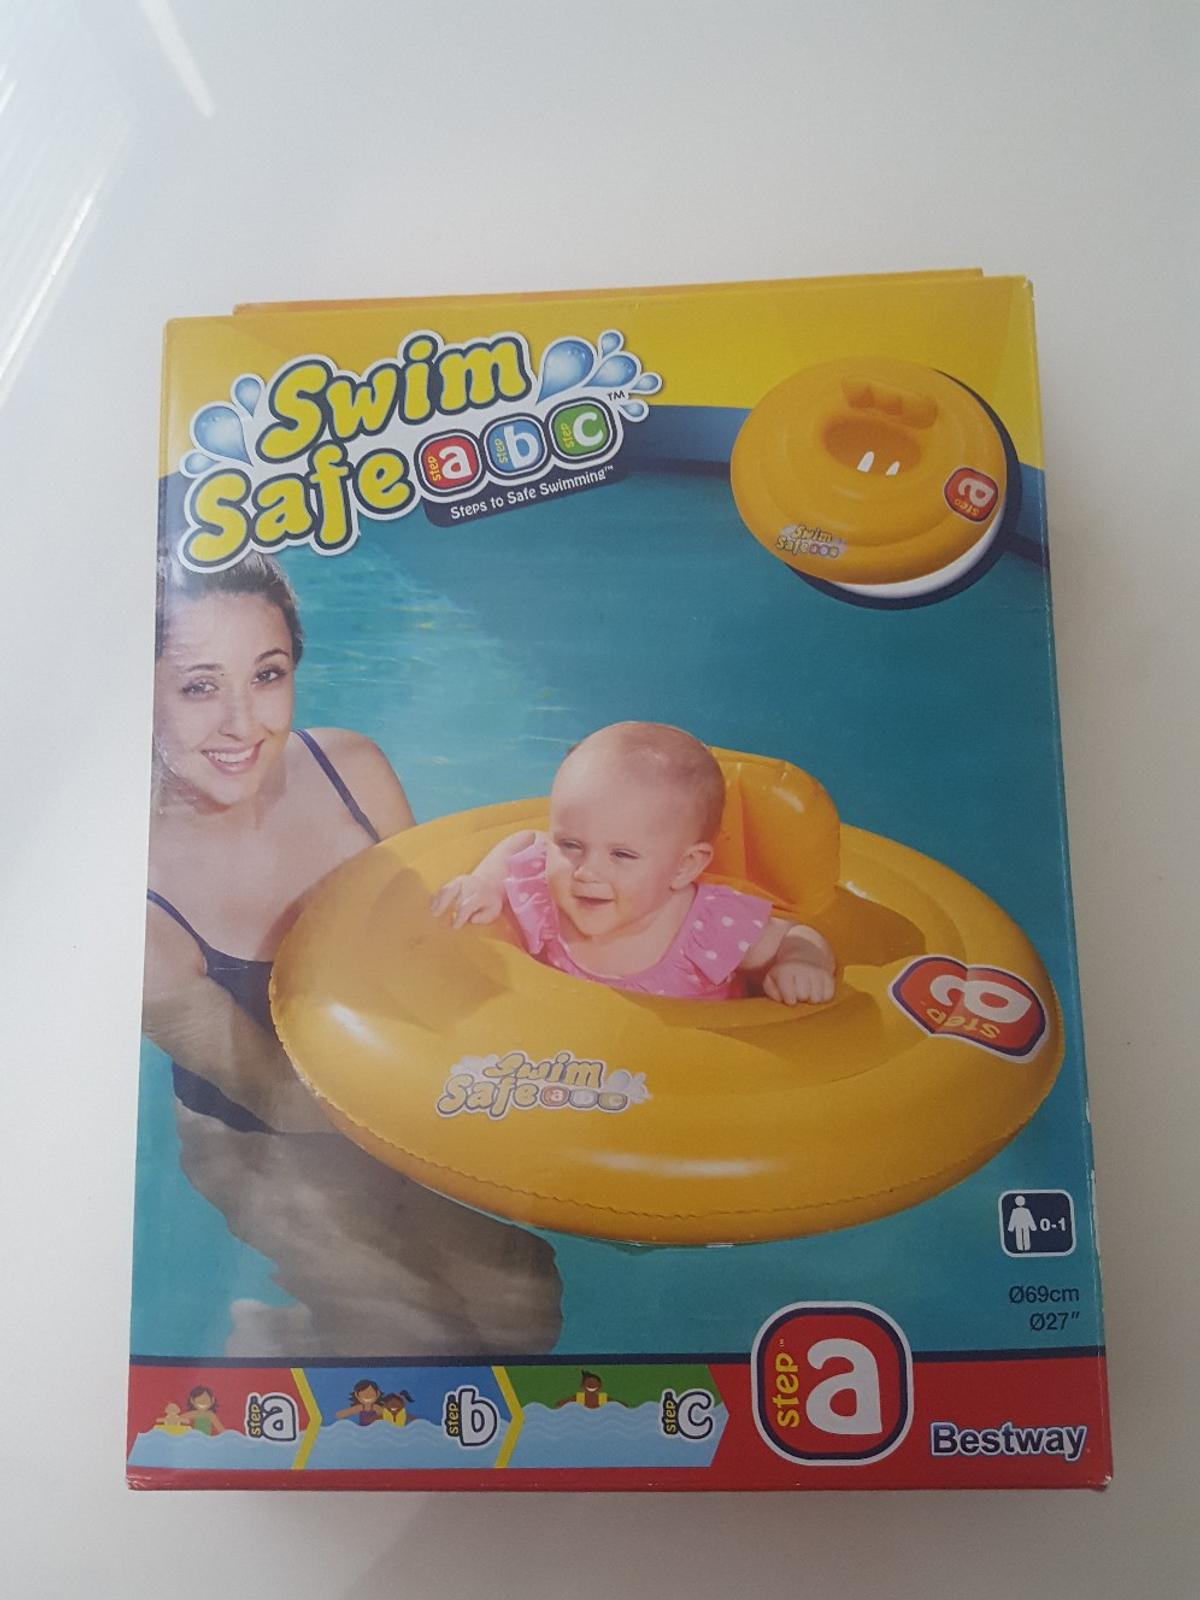 Baby 12 Monate Baby Schwimmsitz/schwimmring 0-12 Monate In 1210 Wien For €8.00 For Sale | Shpock